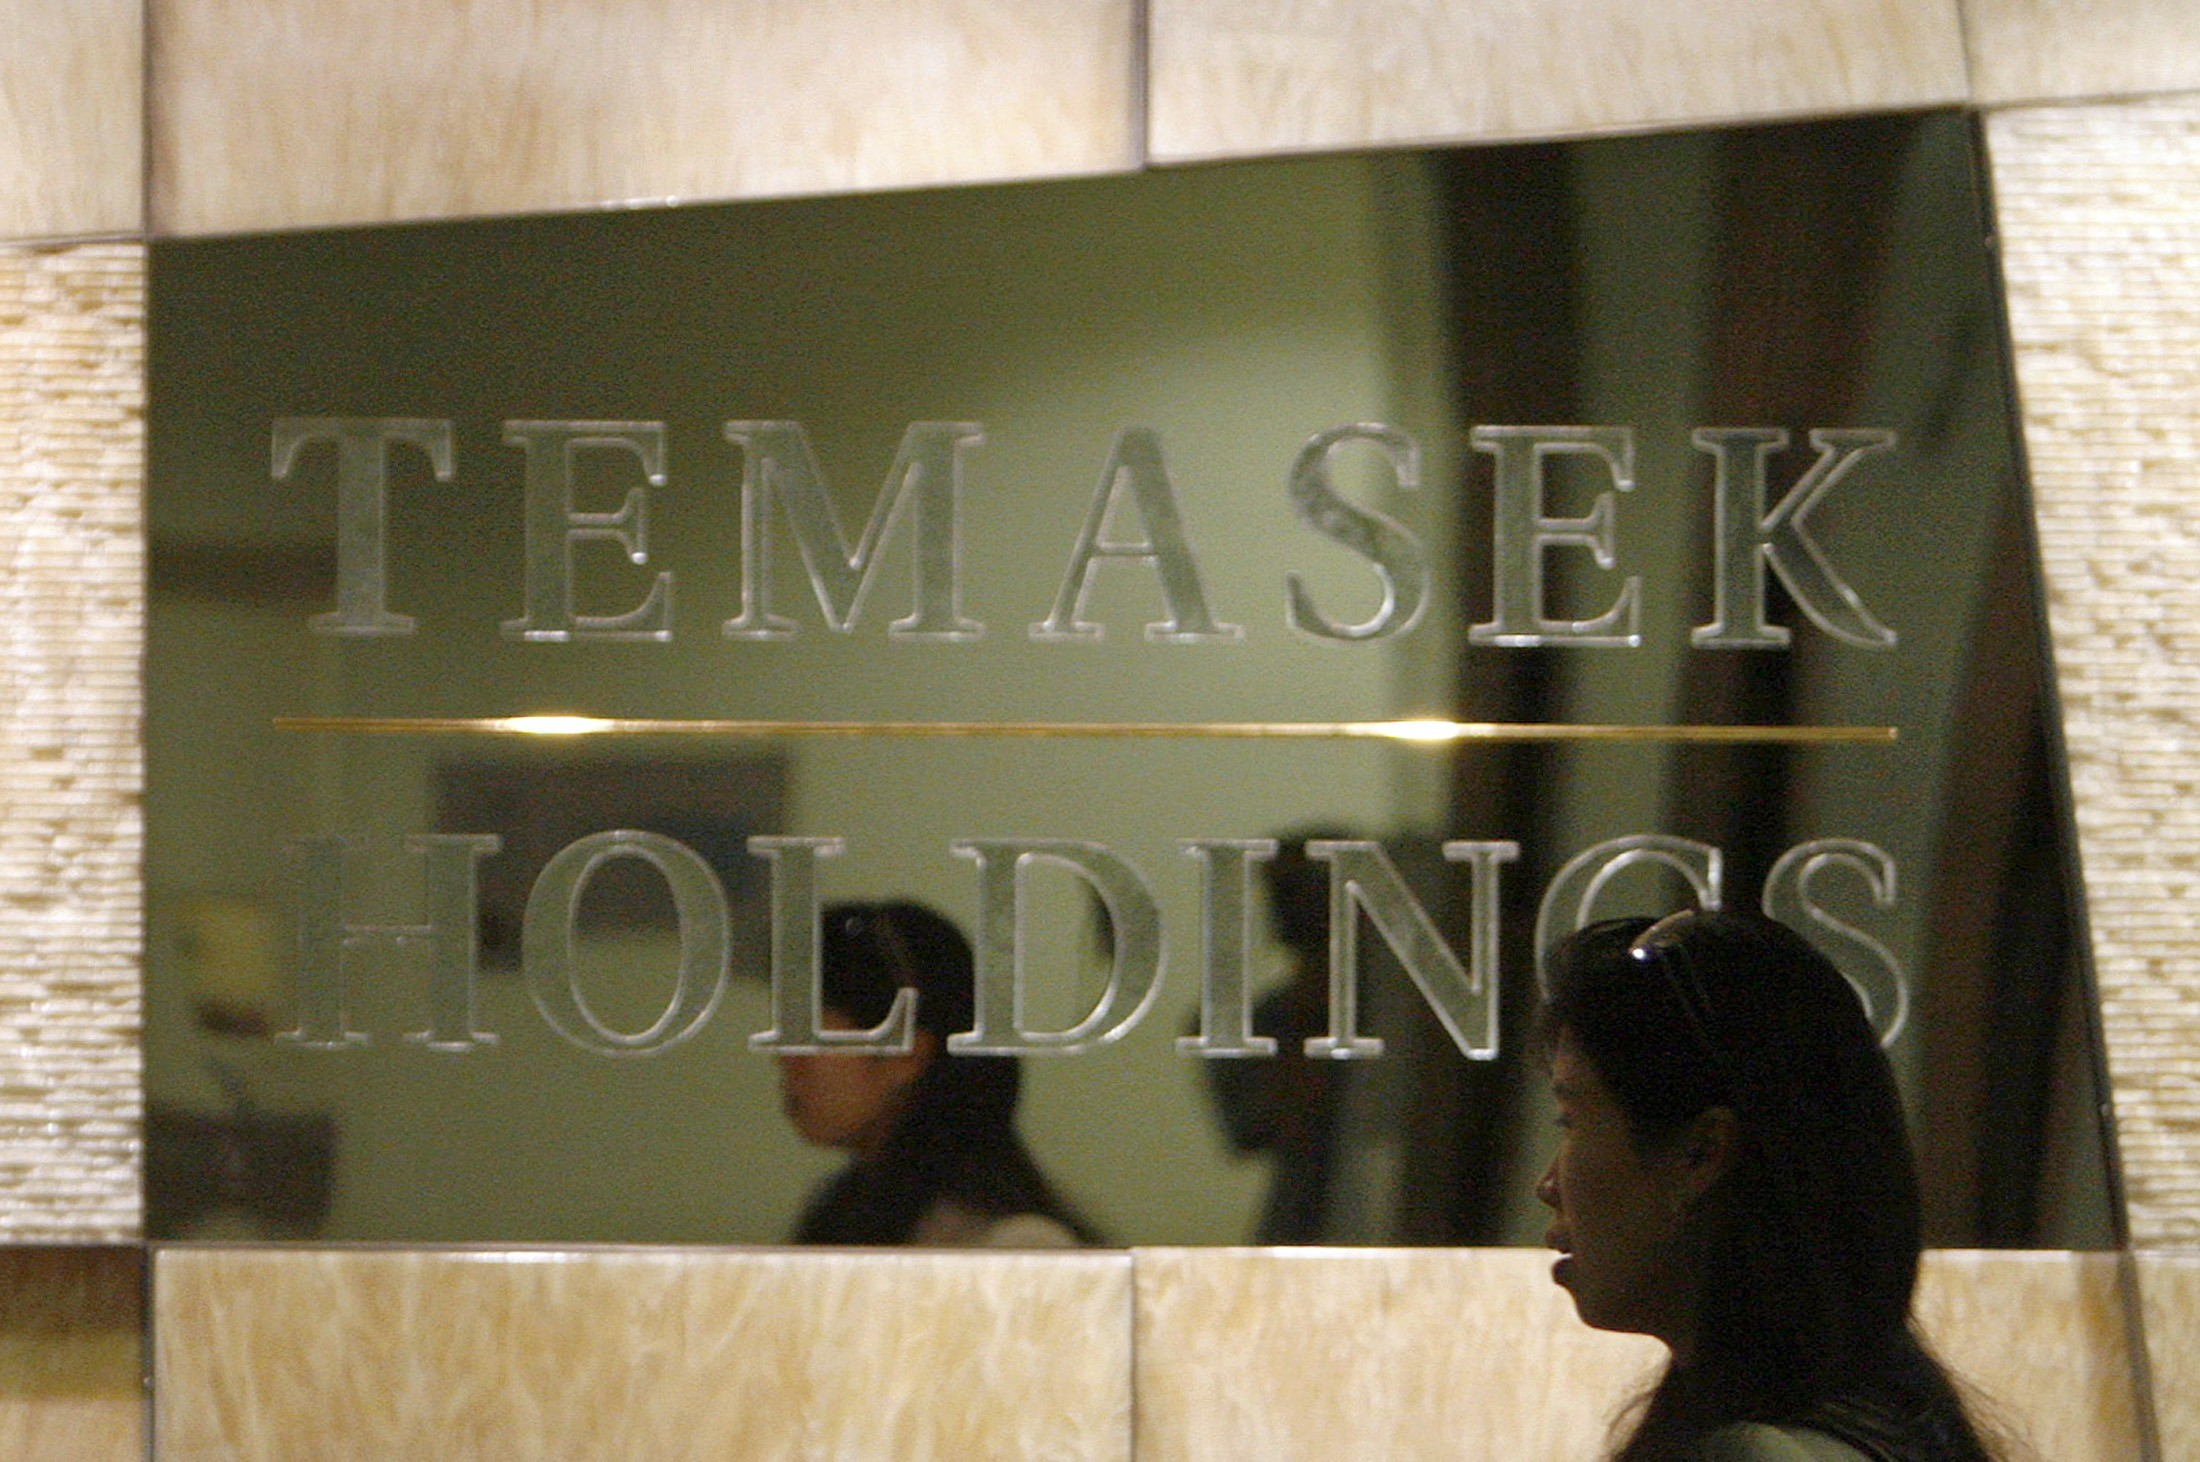 In Singapore, Temasek's results spark discussion of Chinese